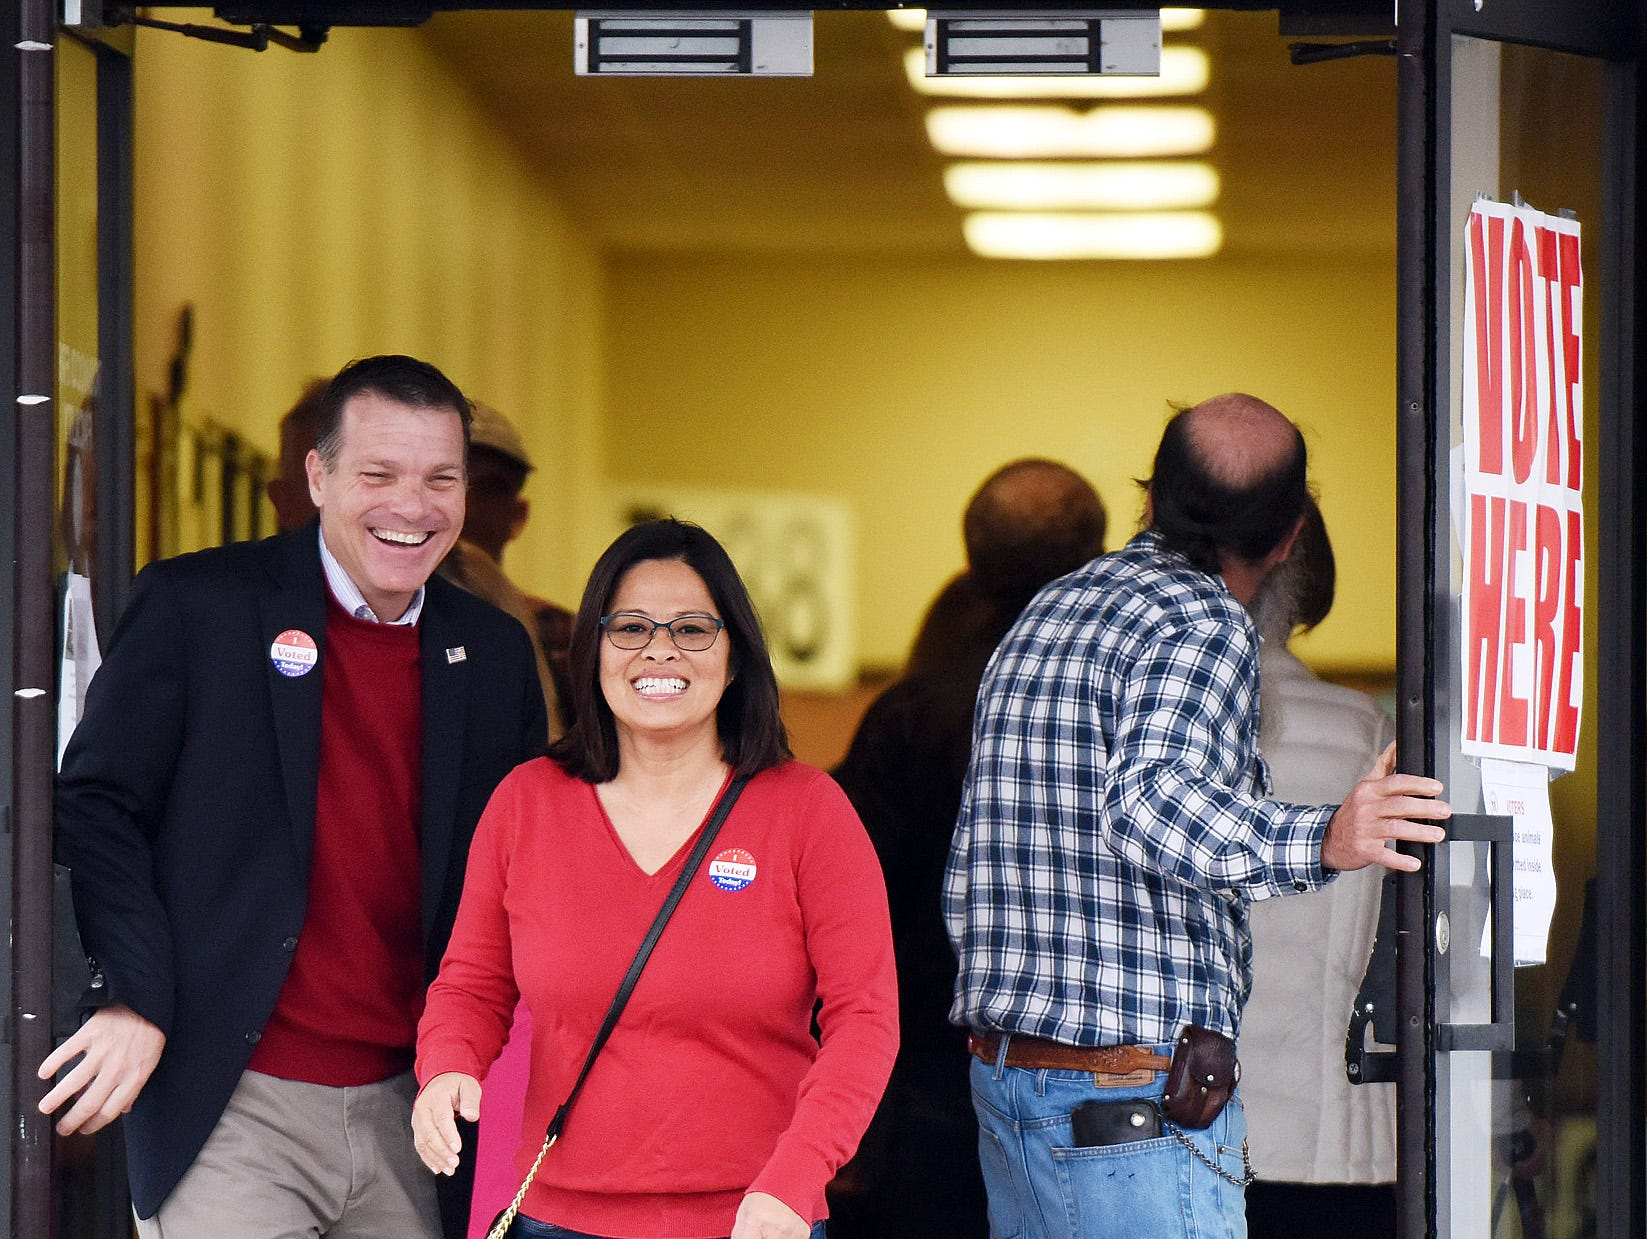 U.S. Senate Candidate Rob Arlett and wife Lorna exit after voting at the Roxana Fire Station as voter turnout in eastern Sussex County has been steady at polling places in Rehoboth, Roxana, and Angola as candidates still greet supporters for their support.